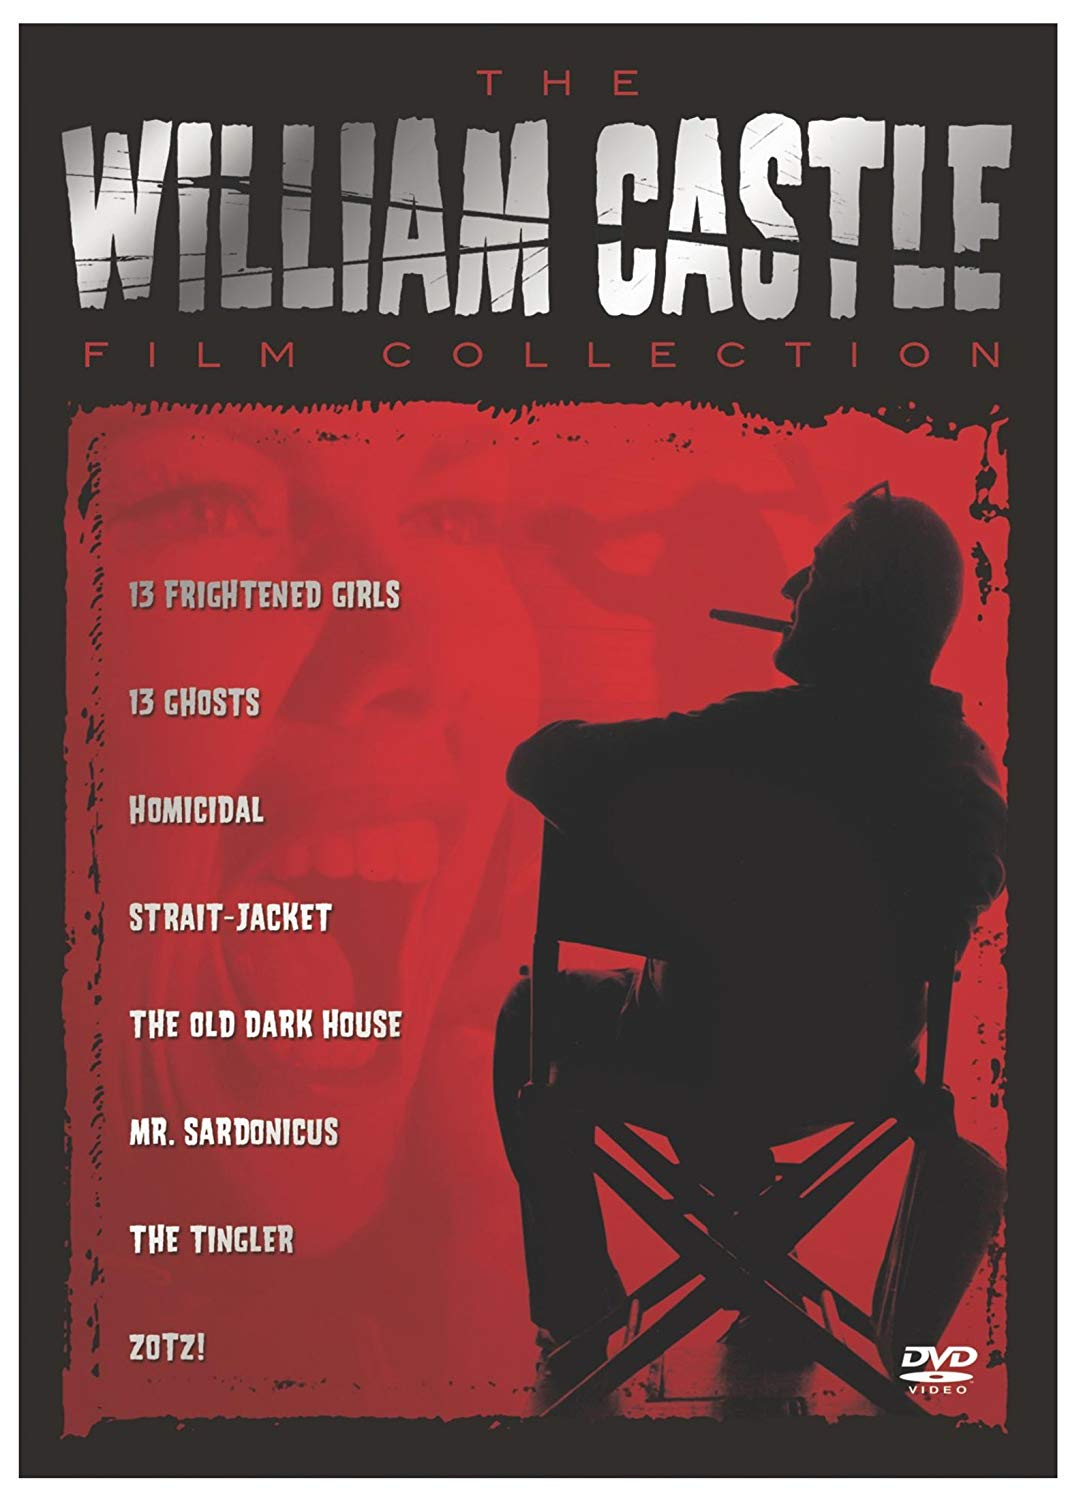 The William Castle Film Collection